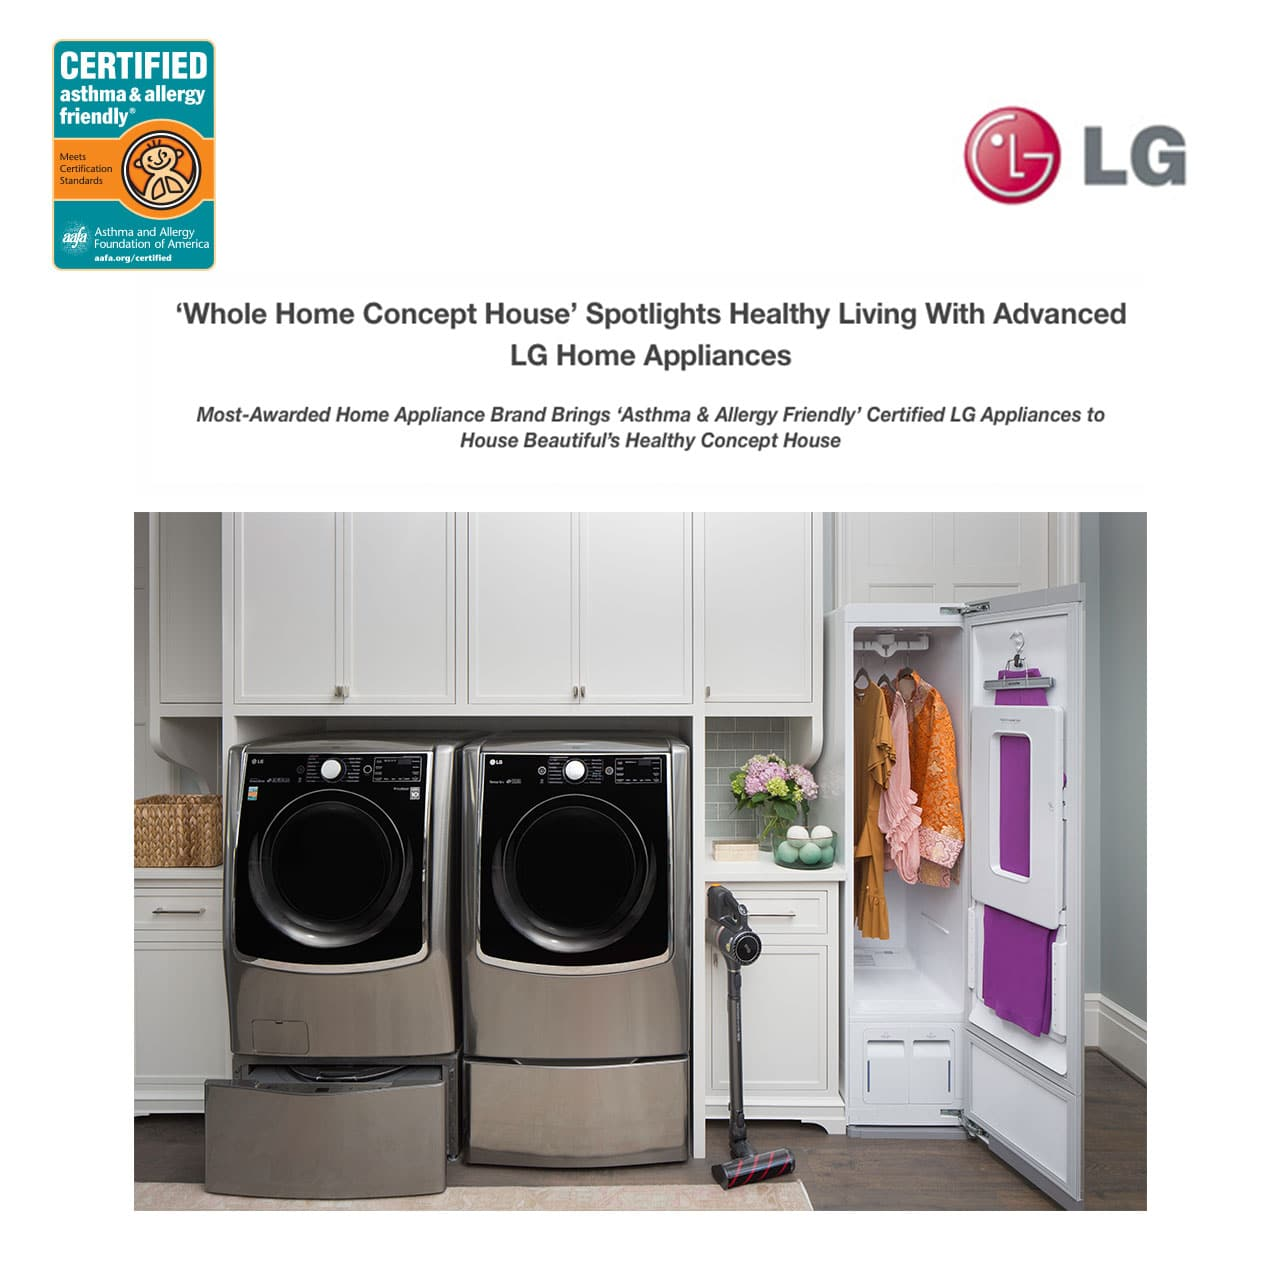 LG-Whole-Home-Concept-Healthy-Living